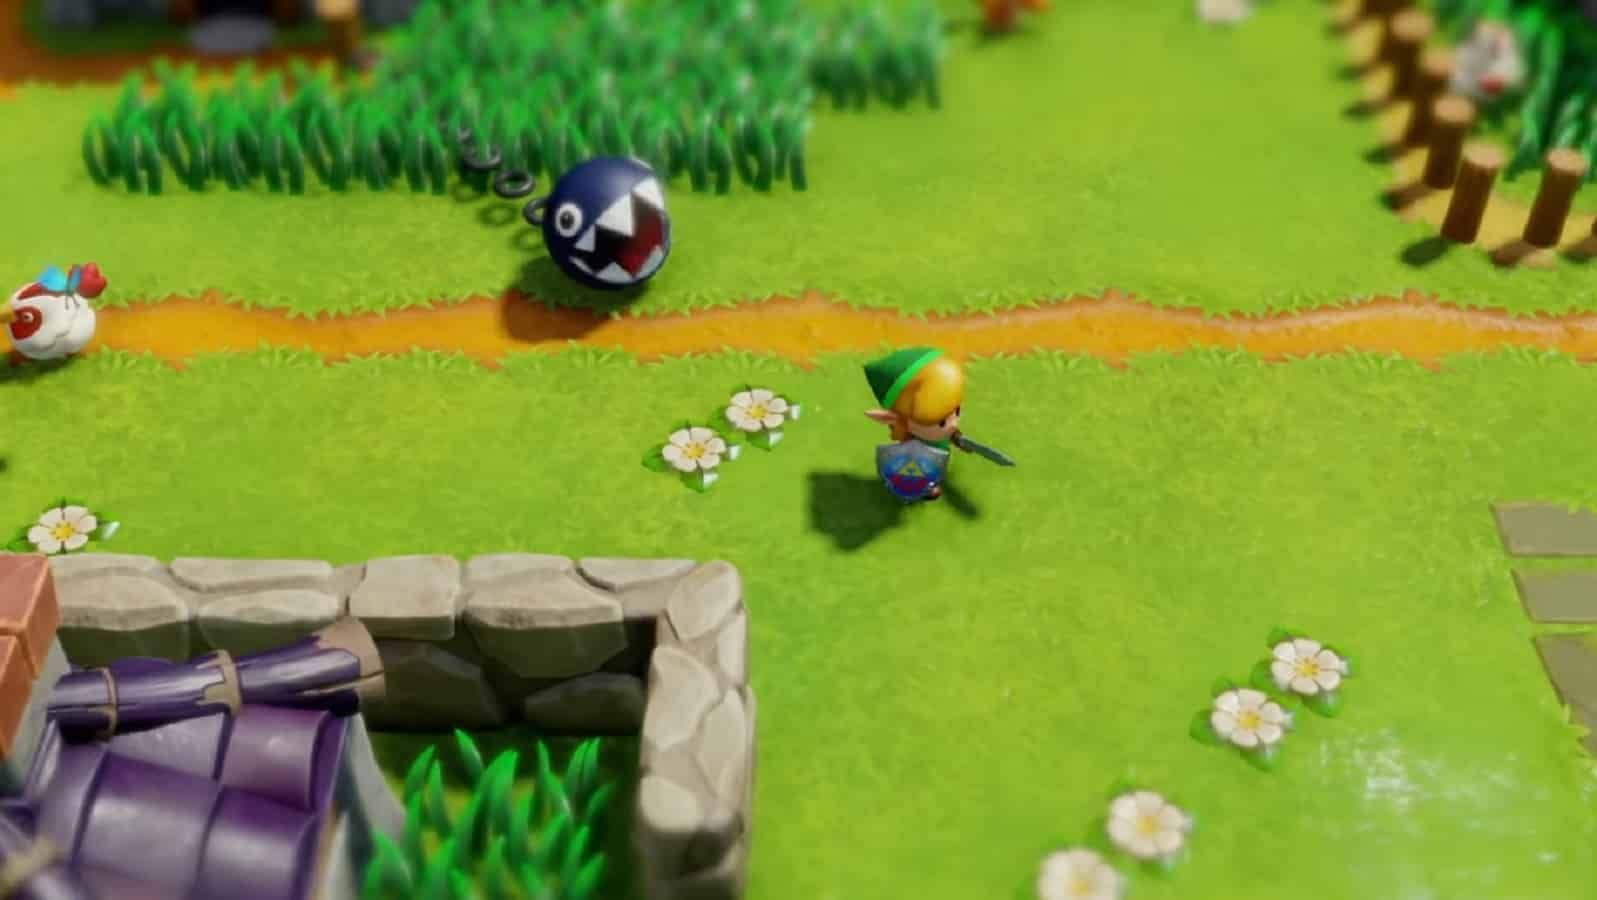 legend of zelda link's awakening on nintendo switch